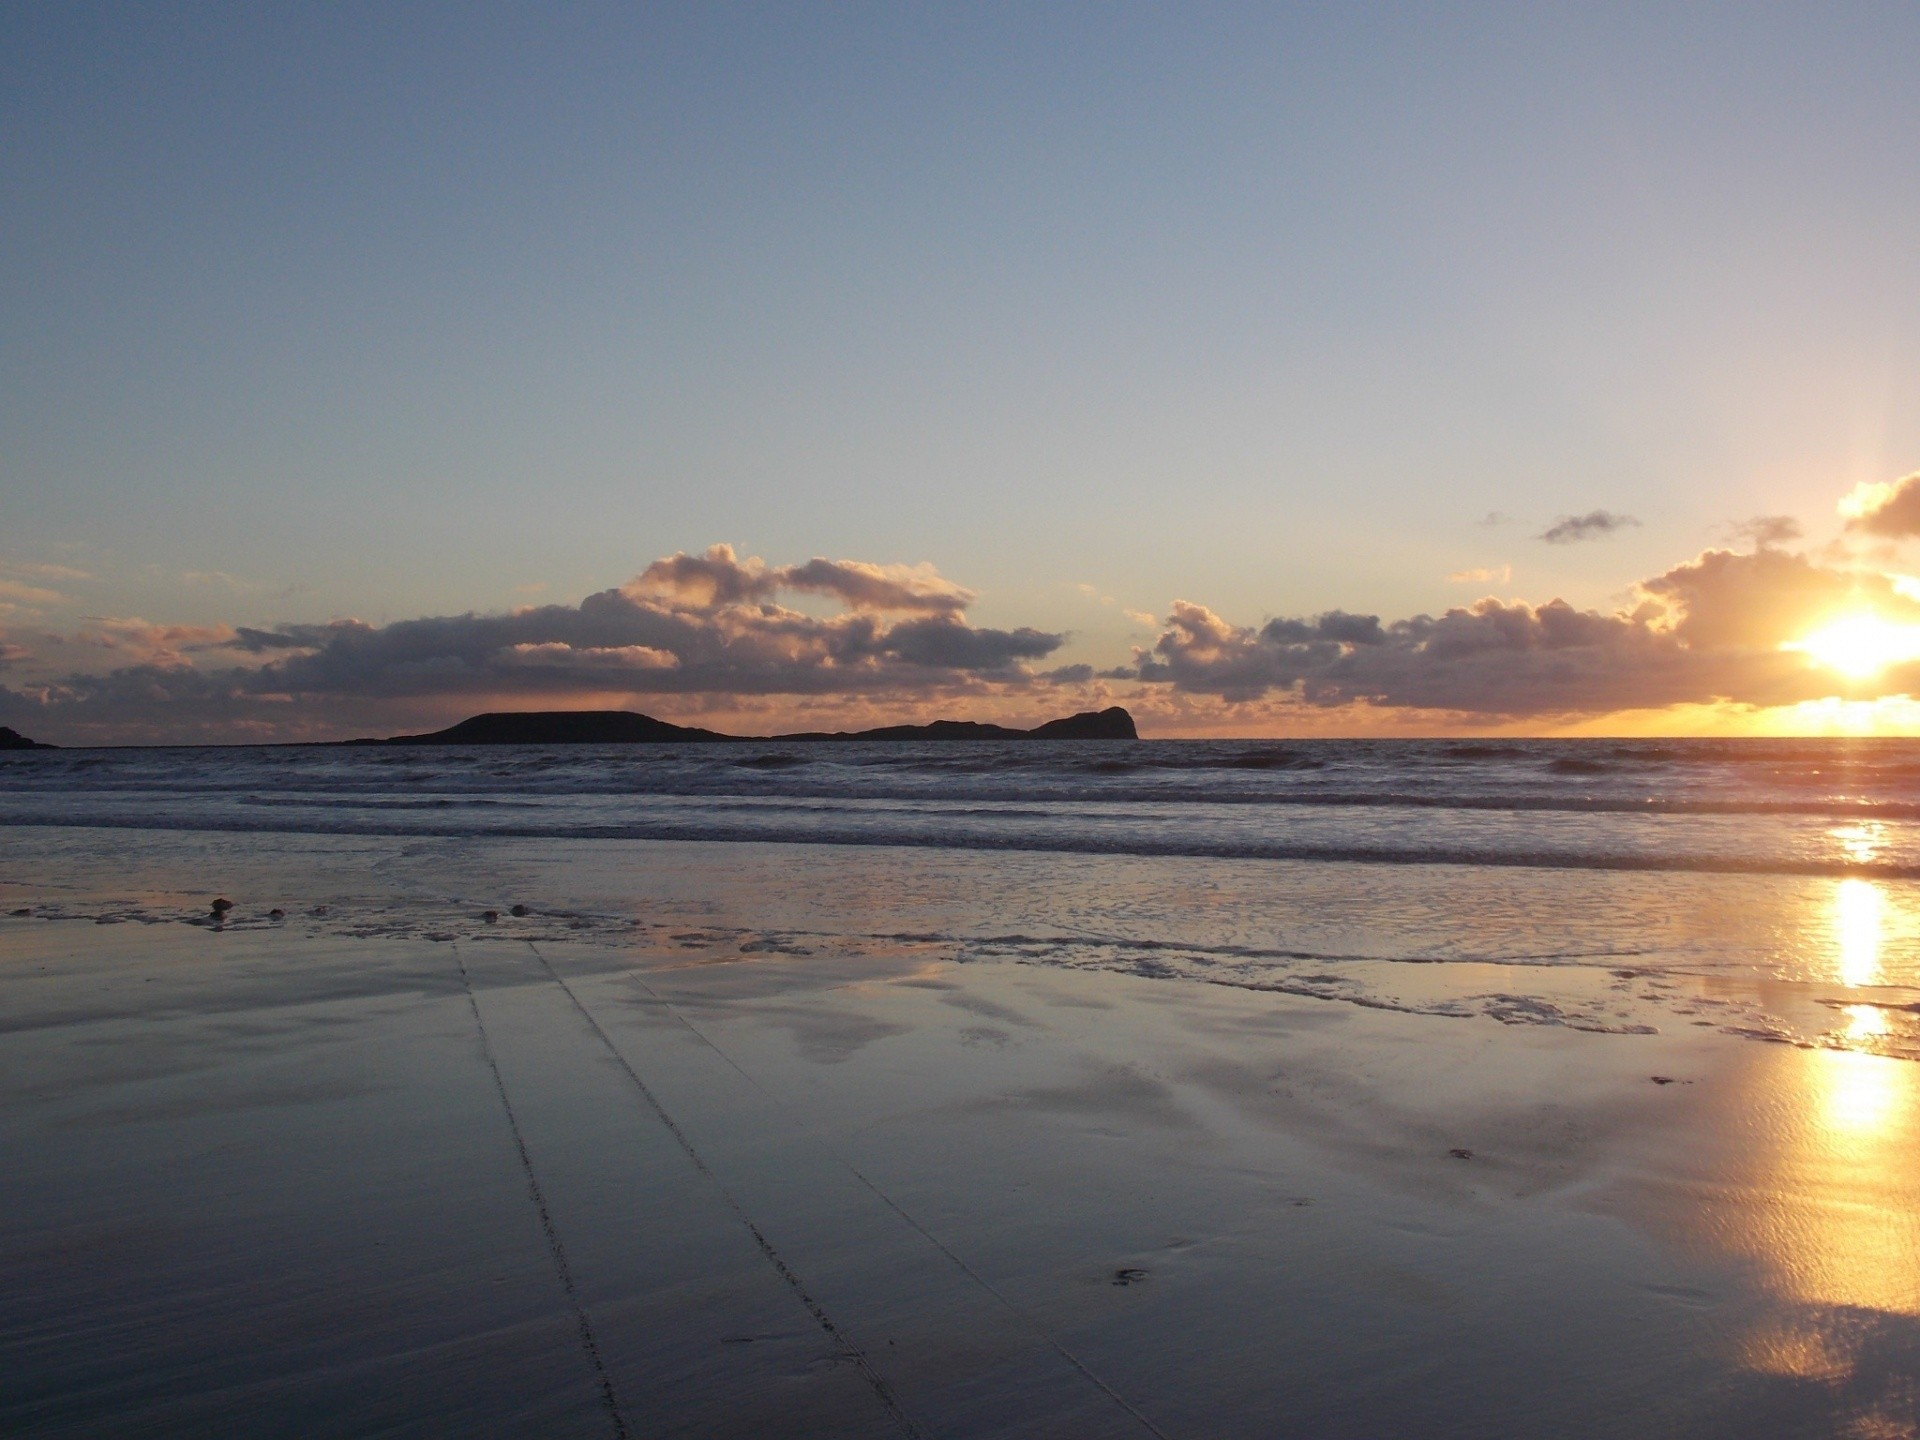 Jack Merrifield's photo of Llangennith / Rhossili